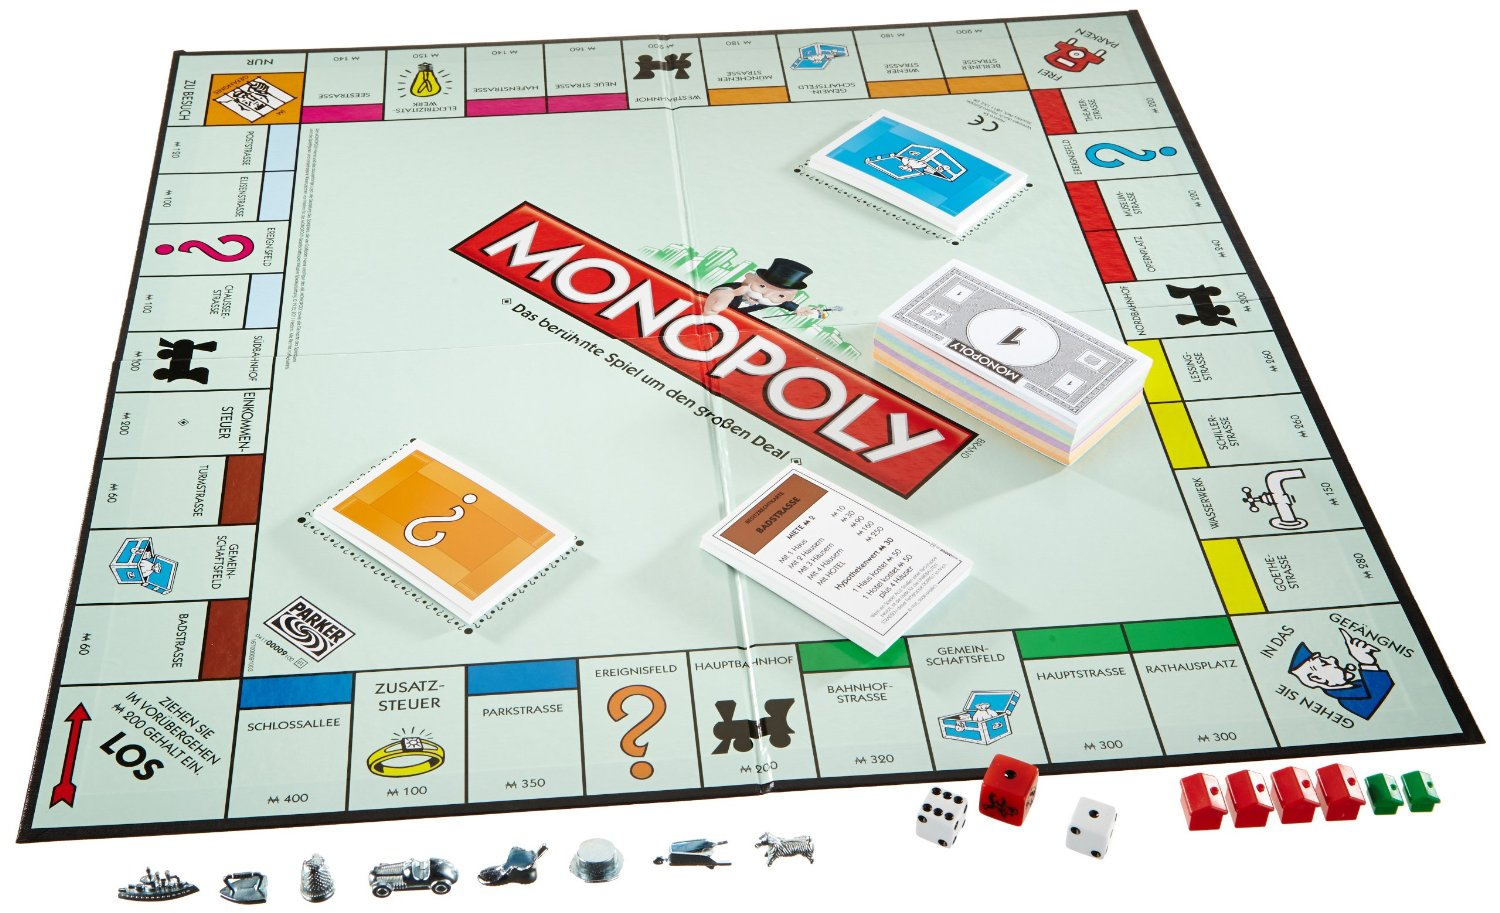 Surprising Things Invented By Women - Monopoly